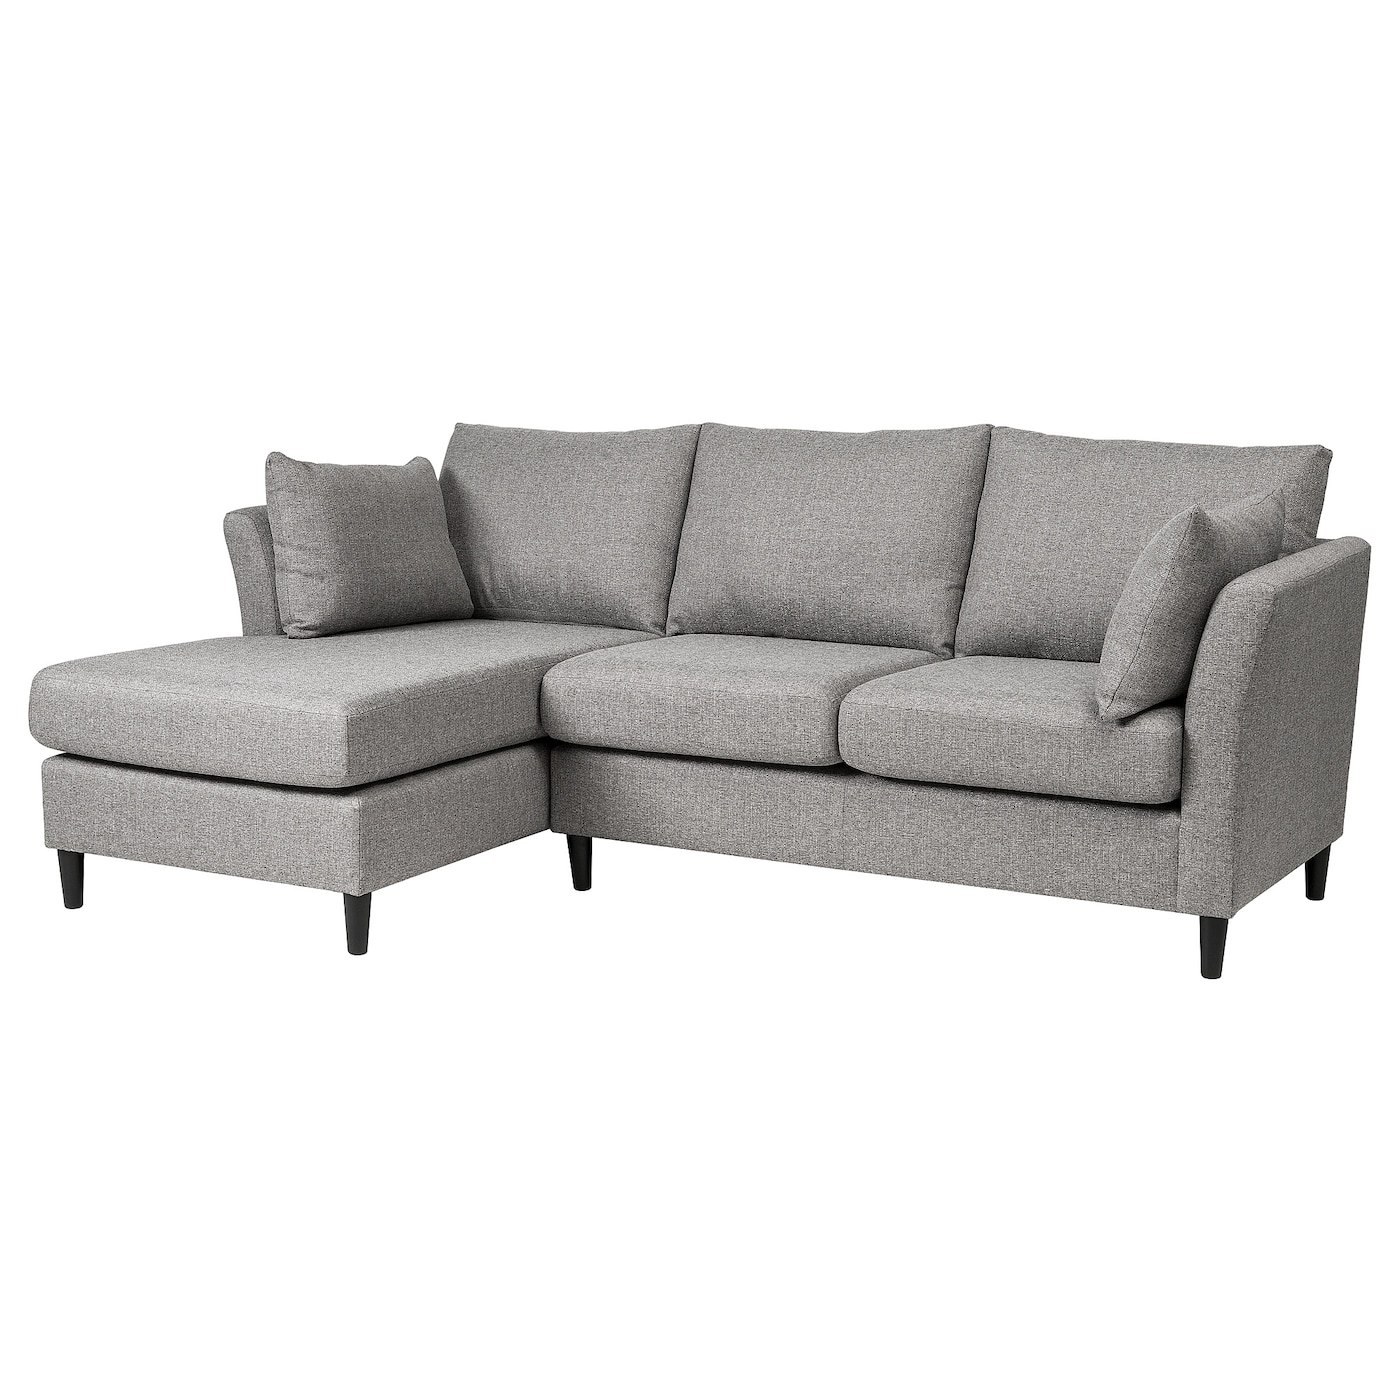 2 seater sofa with chaise sofas 2 3 seater fabric leather for 1 seater chaise lounge